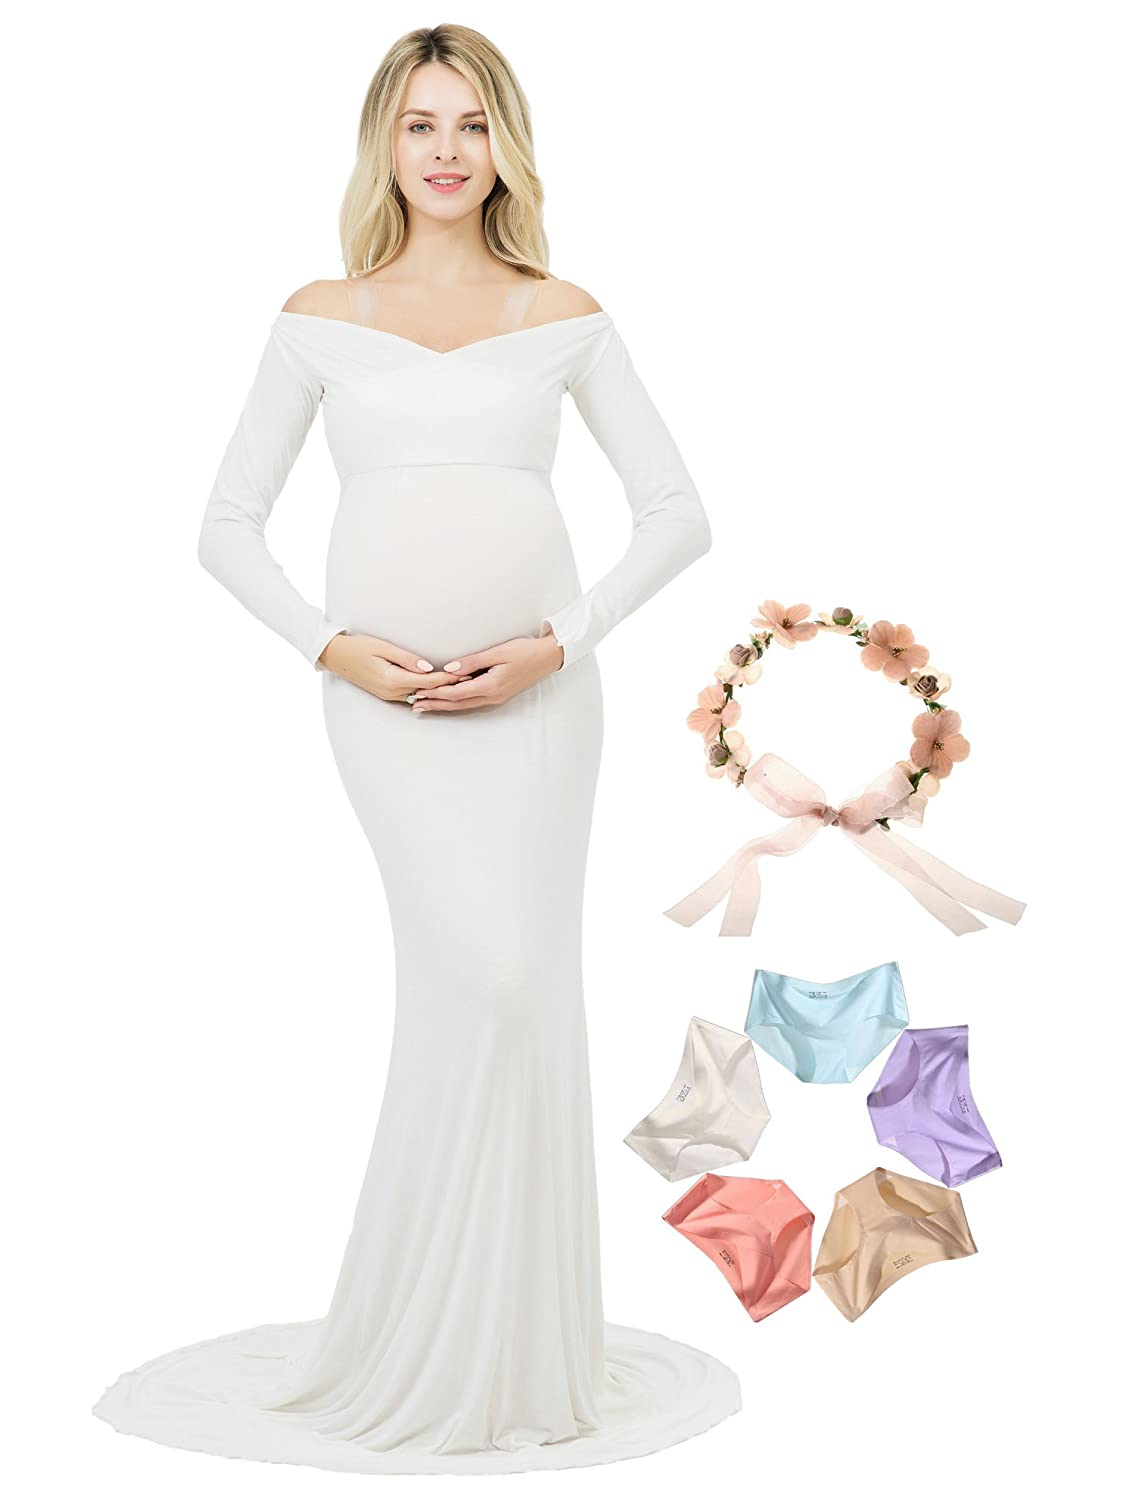 Sannyway Photoshoot Maternity Dress Long Sleeve Off Shoulder V-Neck Photography Gown